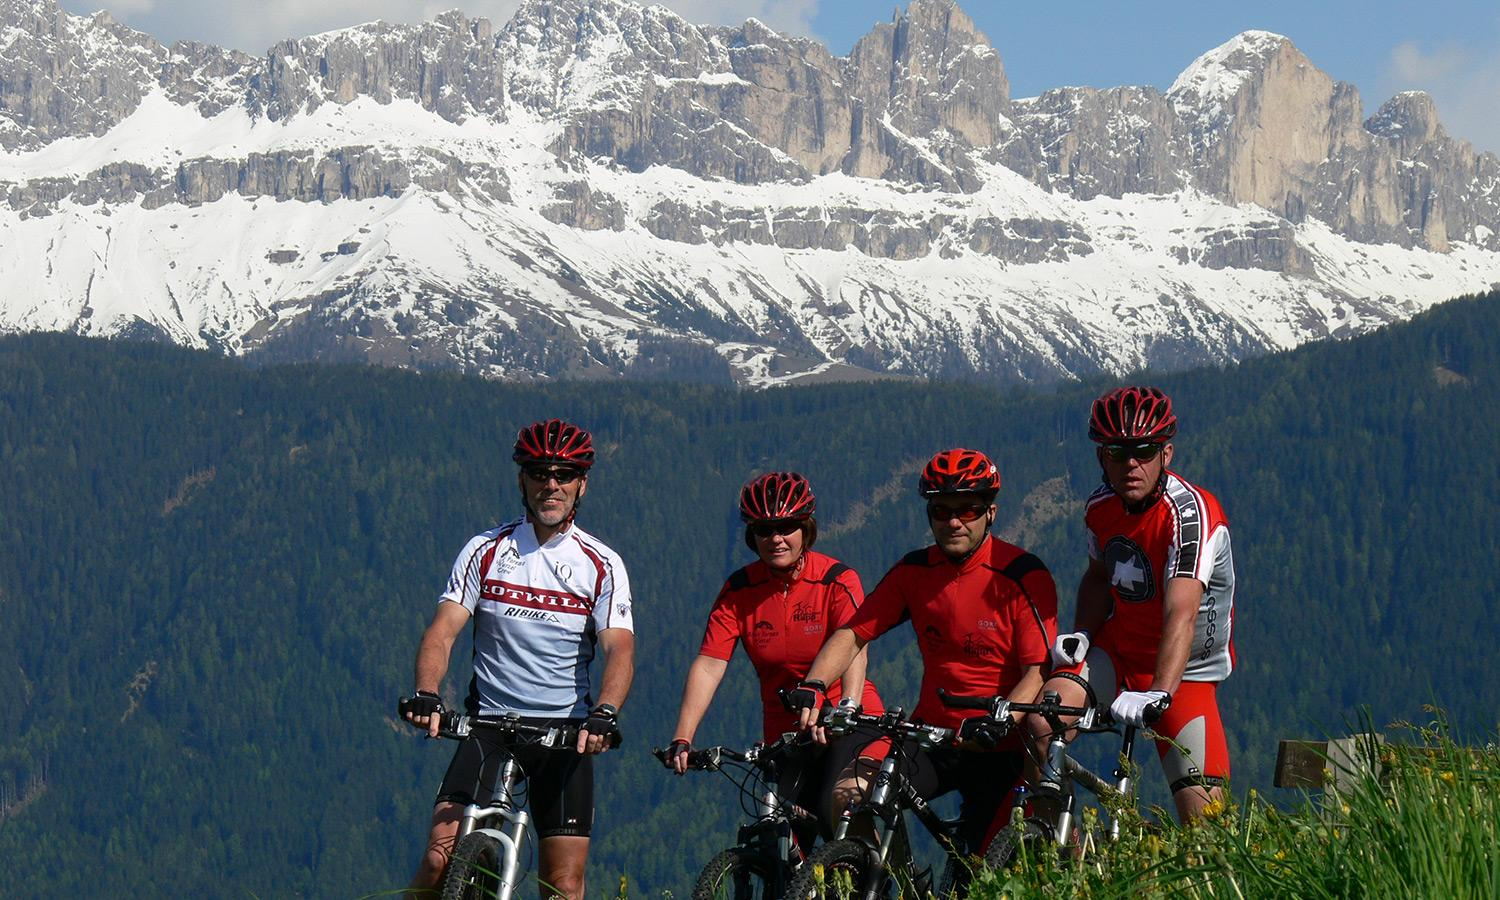 Mountain biking in the South Tirolean Dolomite Alps